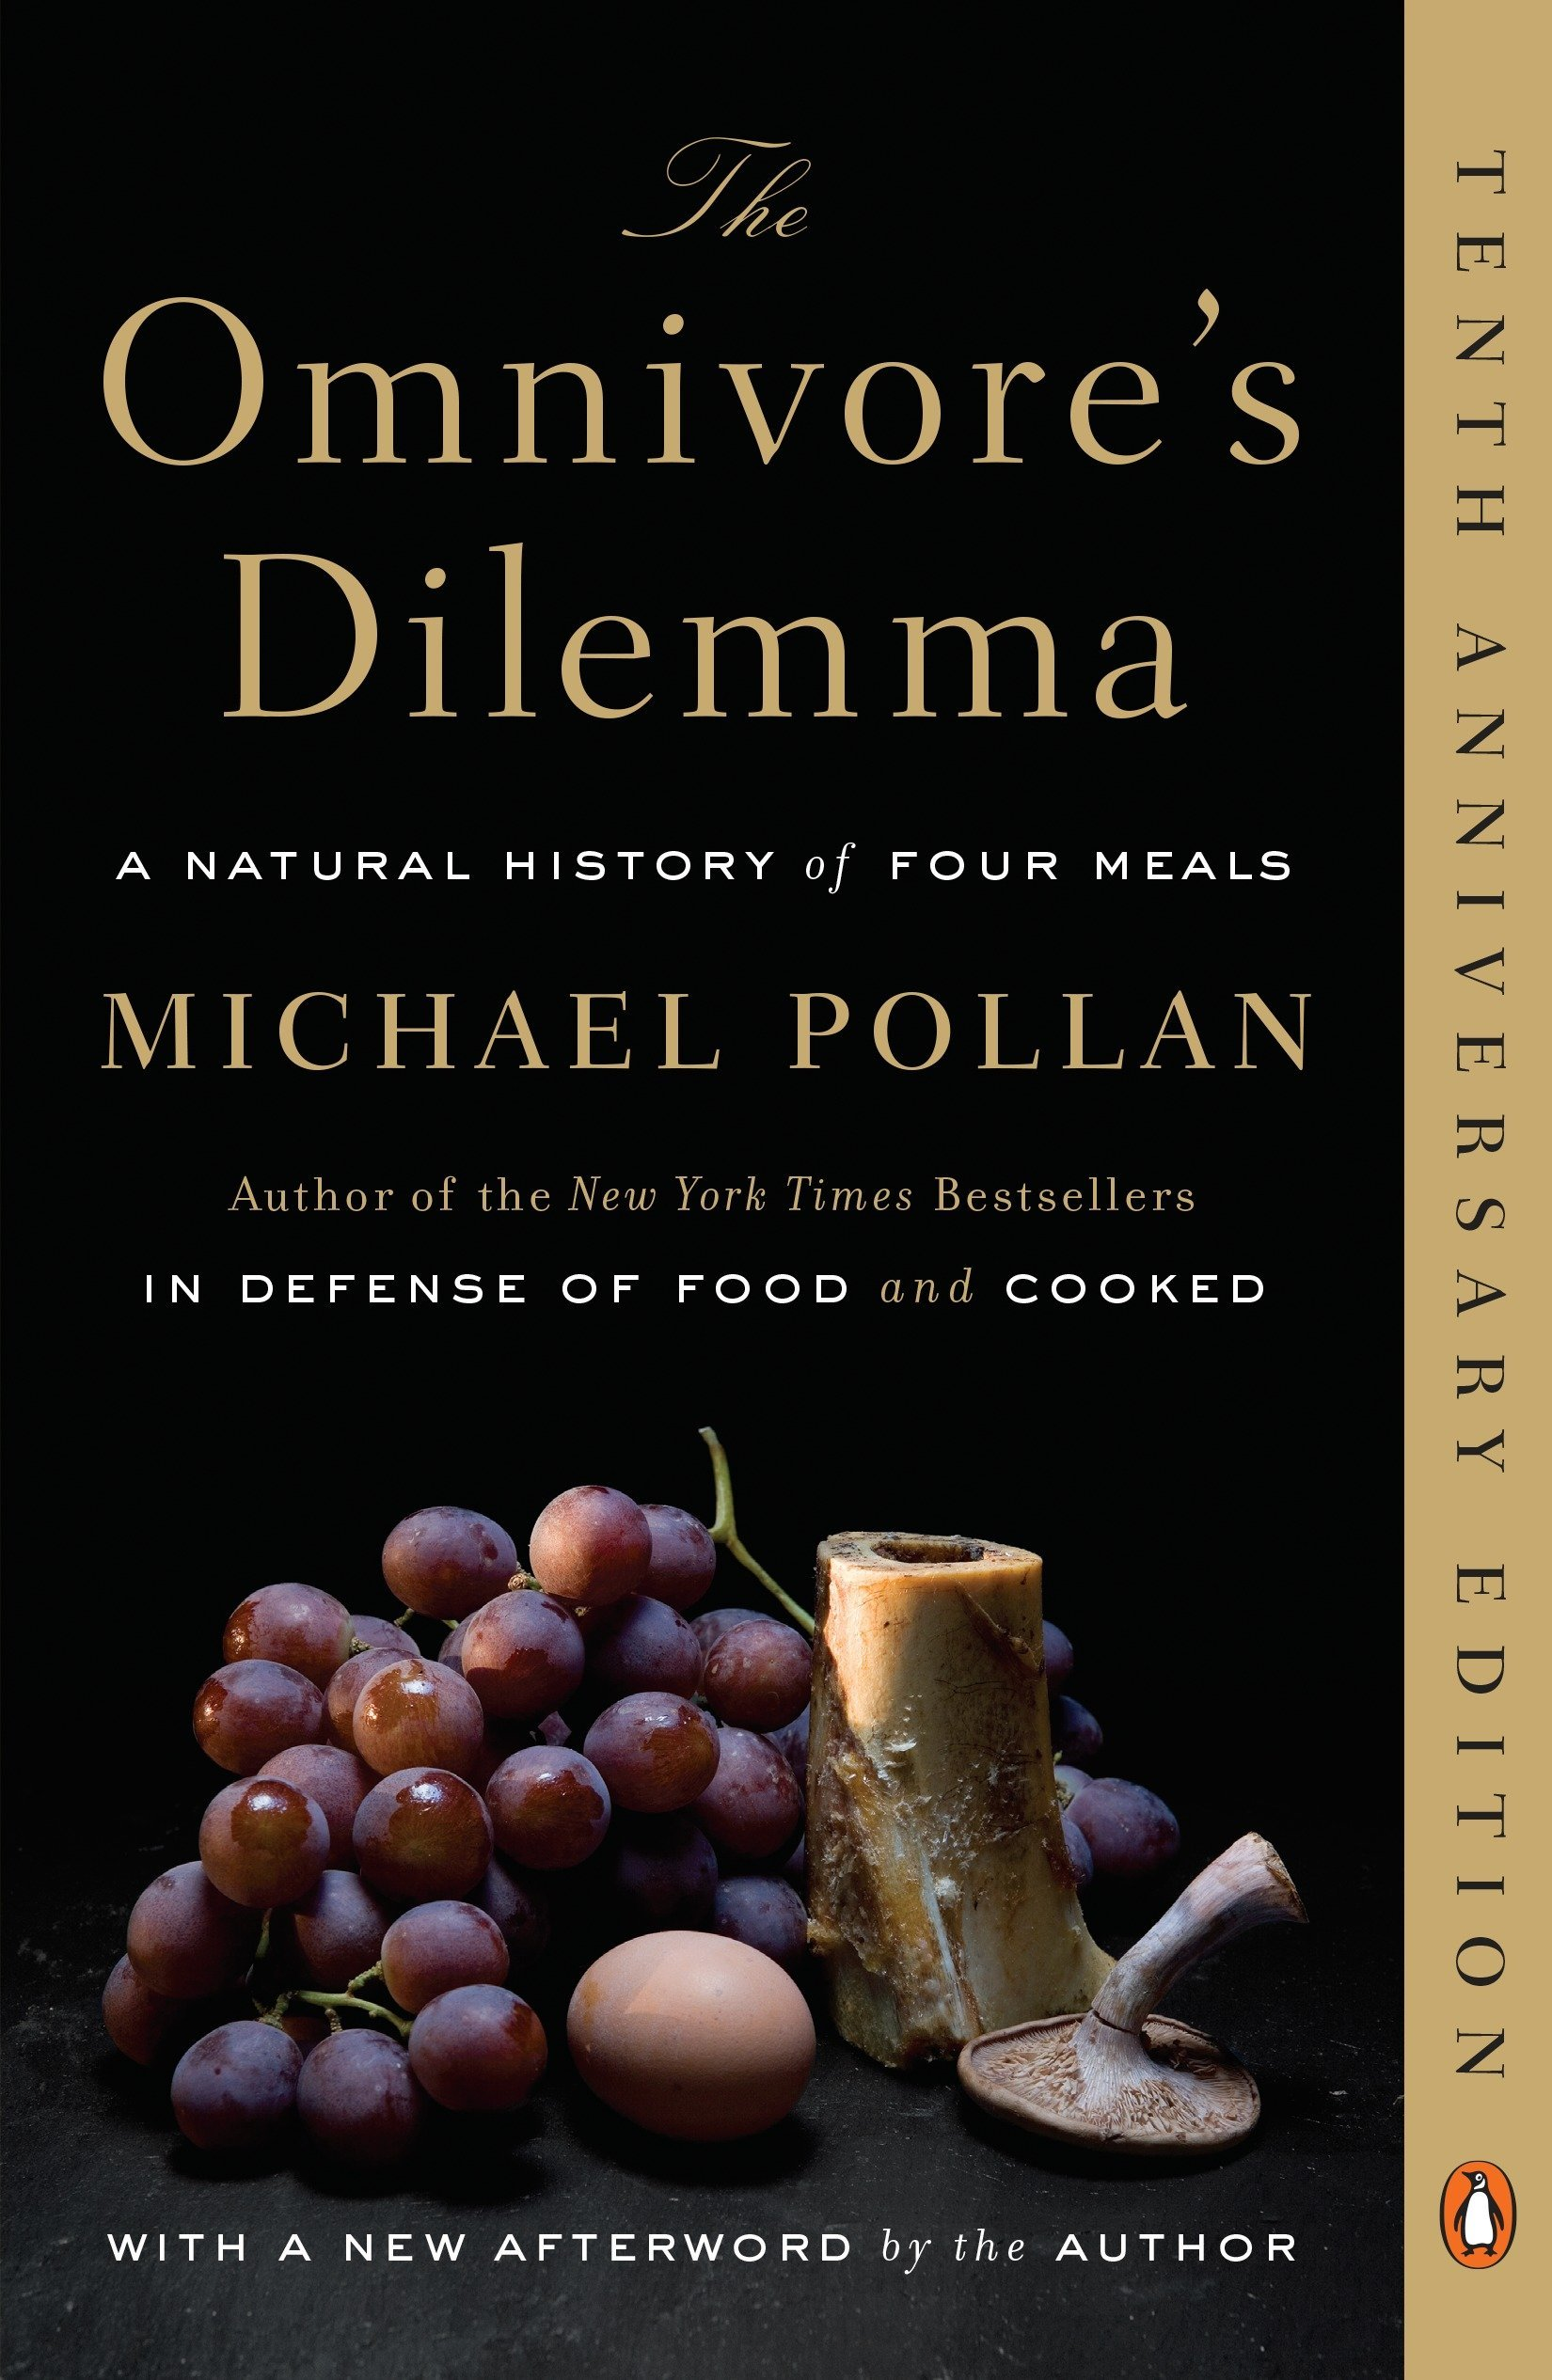 The Omnivores Dilemma: A Natural History of Four Meals: Amazon.es: Michael Pollan: Libros en idiomas extranjeros